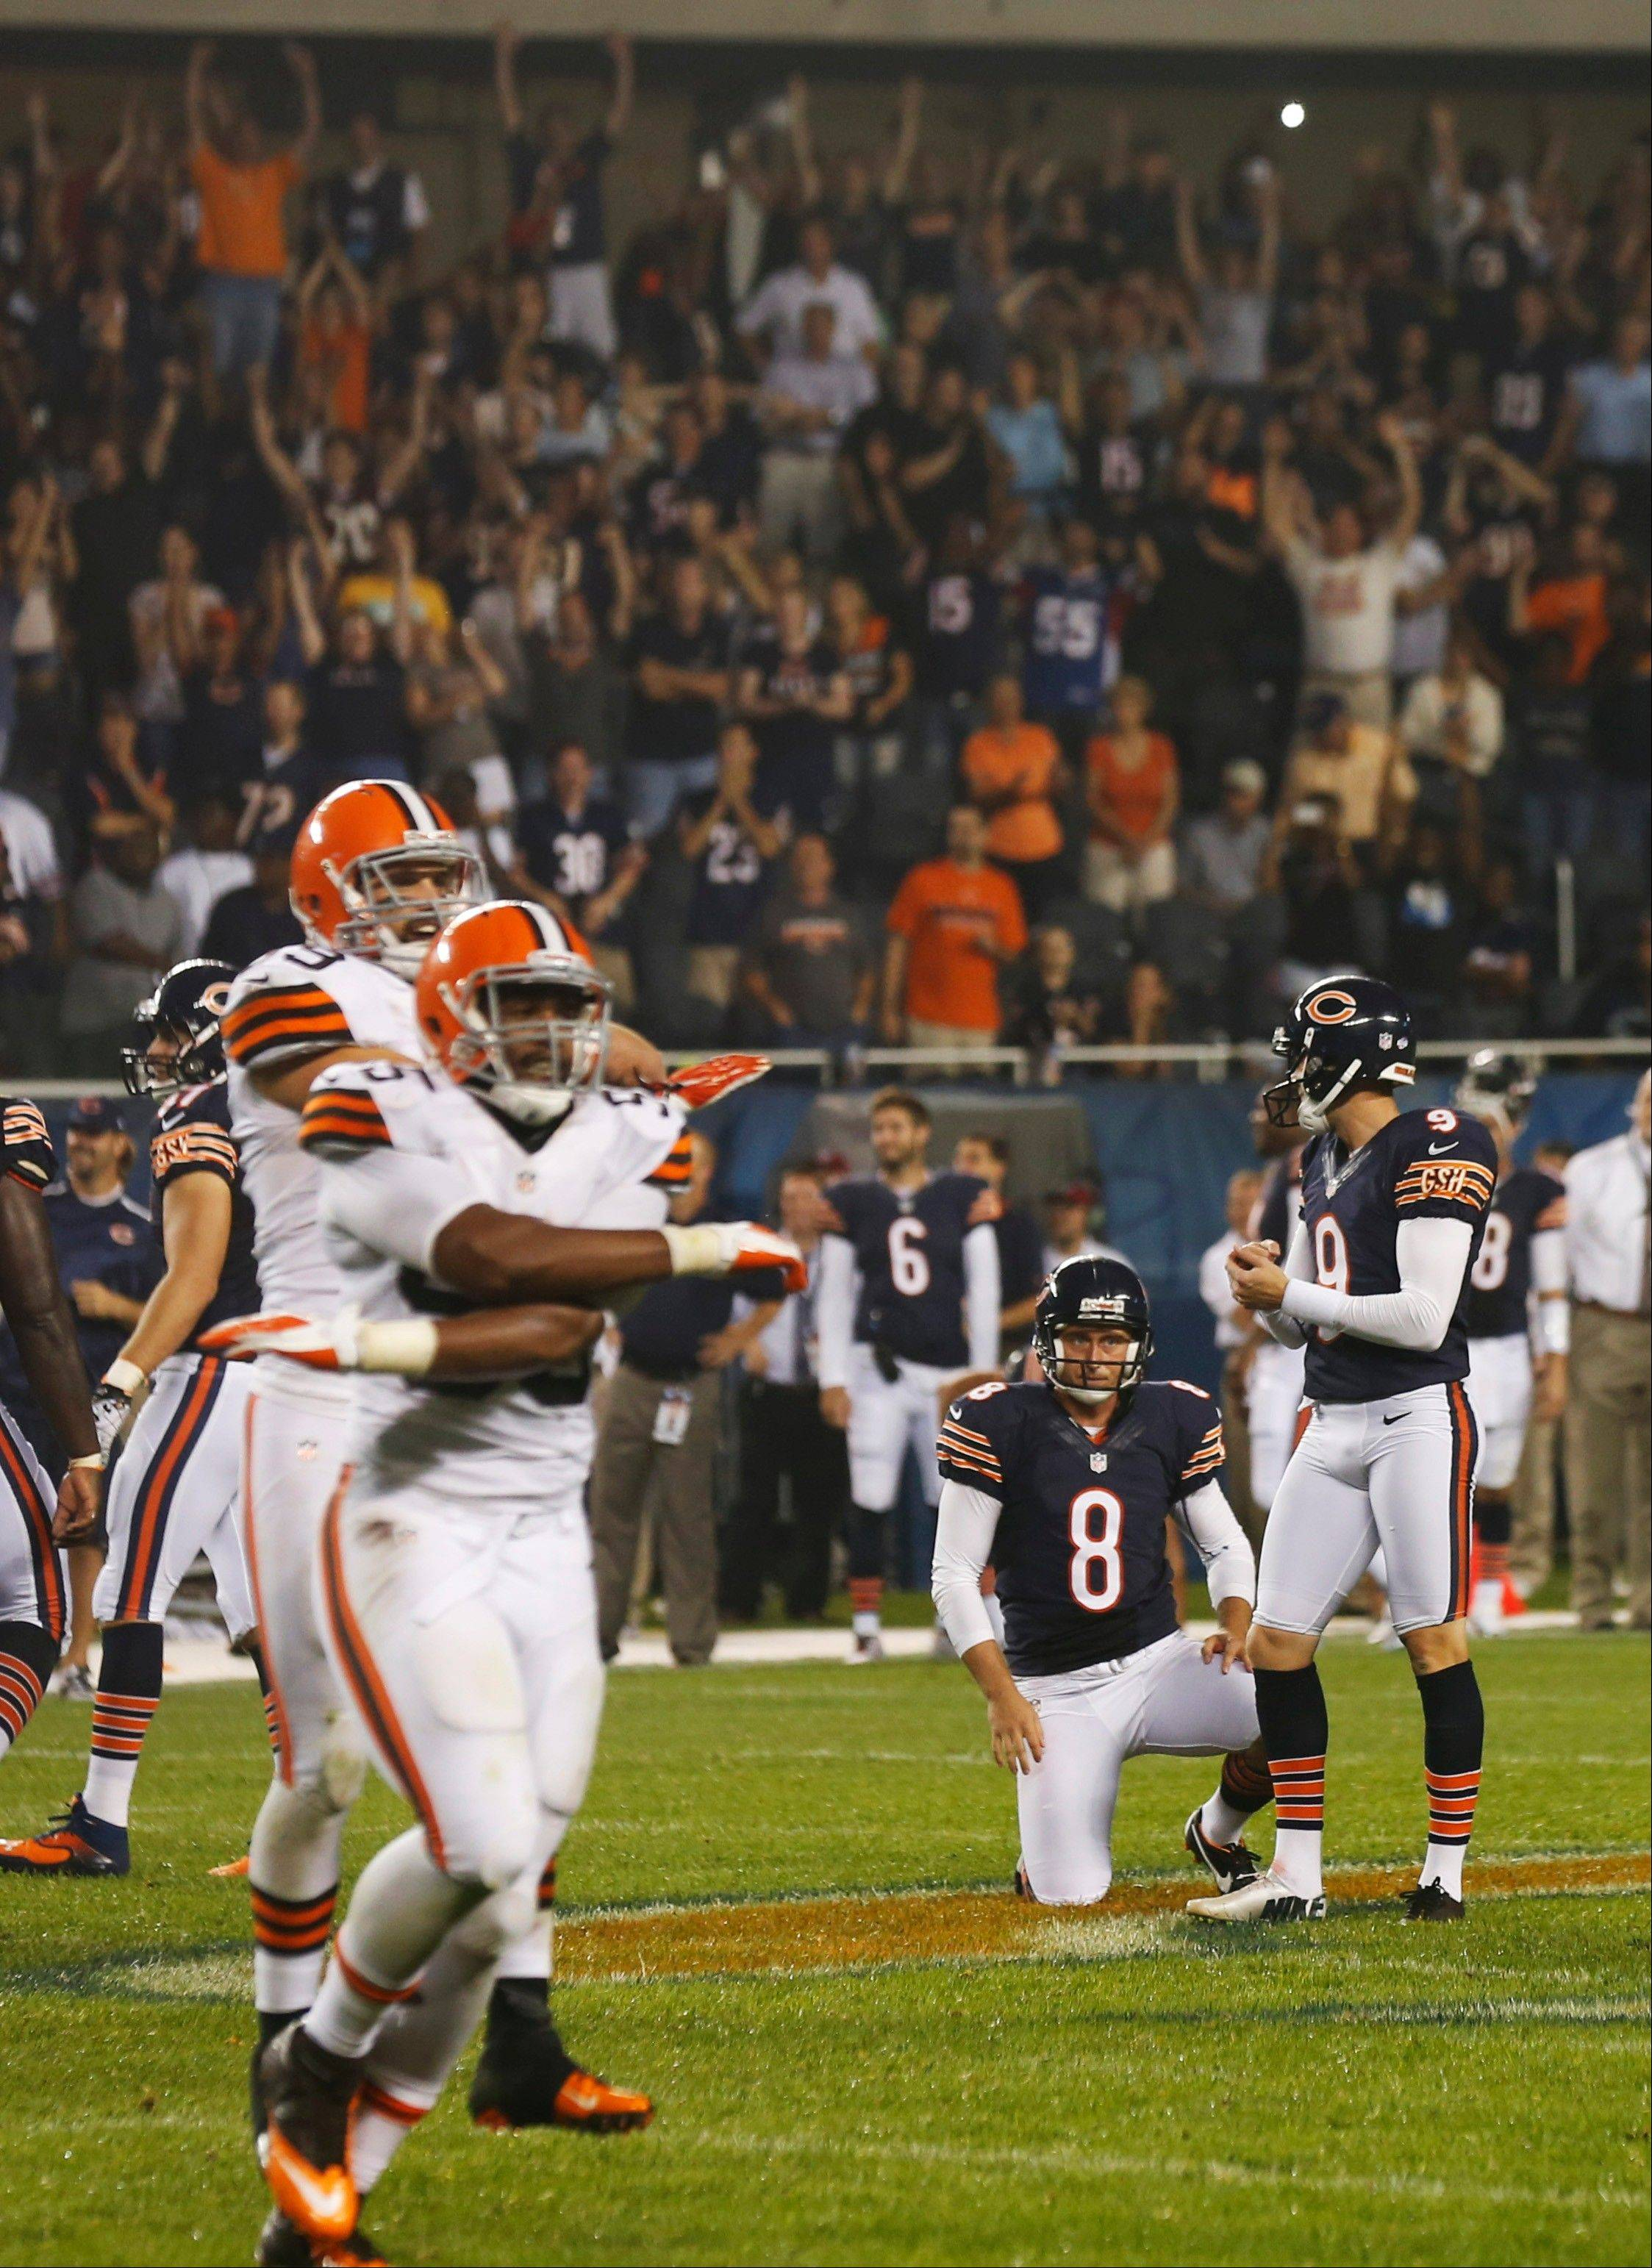 Cleveland Browns players react as Bears kicker Robbie Gould, right, misses a 57-yard field goal-attempt during the second half of a preseason NFL game on Thursday in Chicago. The Browns won 18-16.